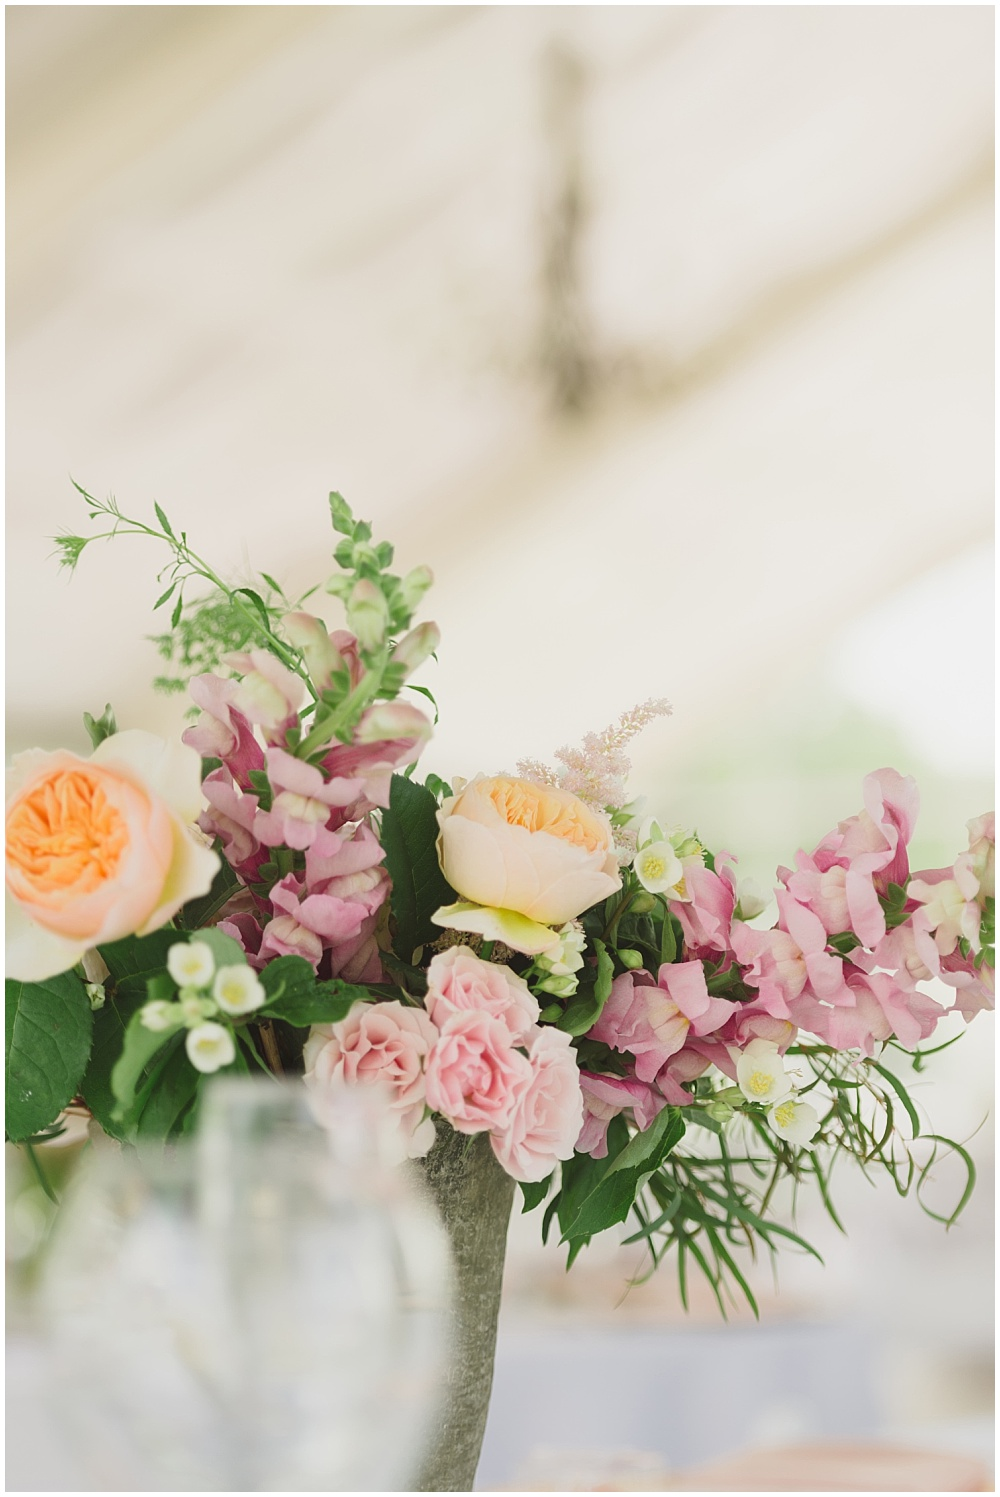 Spring floral centerpieces by Meg Catherine Flowers | Ritz Charles Garden Pavilion Wedding by Stacy Able Photography & Jessica Dum Wedding Coordination